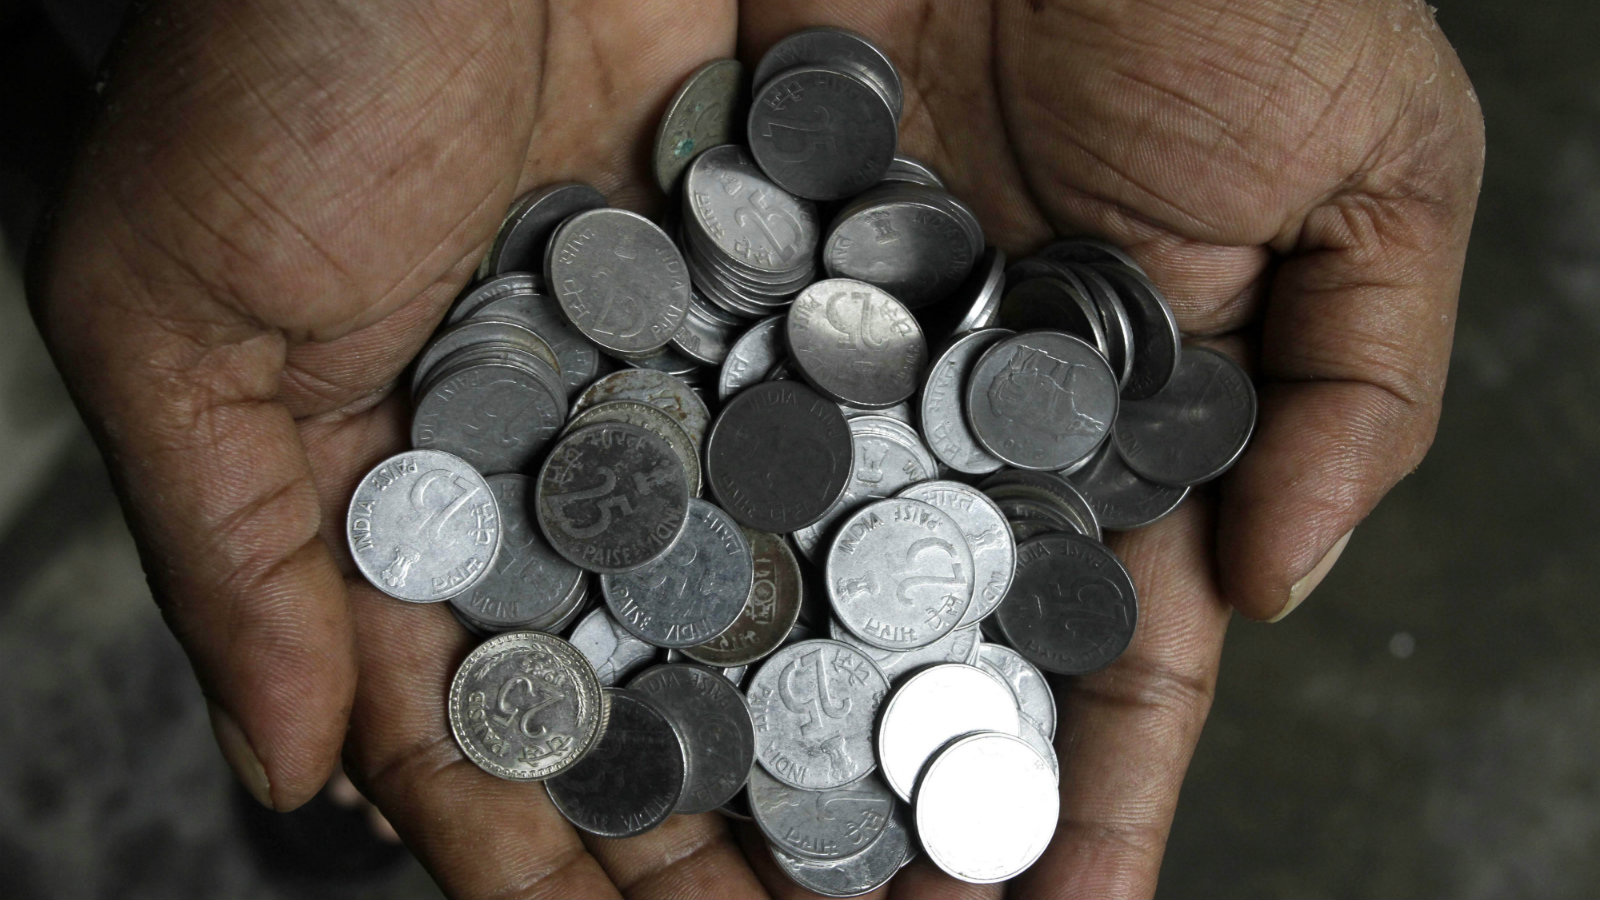 A man shows handful of Indian 25 paisa (US $ 0.005) coins prior to deposit at bank for exchange, in Kolkata, India, Wednesday, June 29, 2011. The Reserve Bank of India is withdrawing 25 paise coins and those of lower denomination from the market with effect from June 30. These coins will not be in circulation and can't be used as legal tender for payment